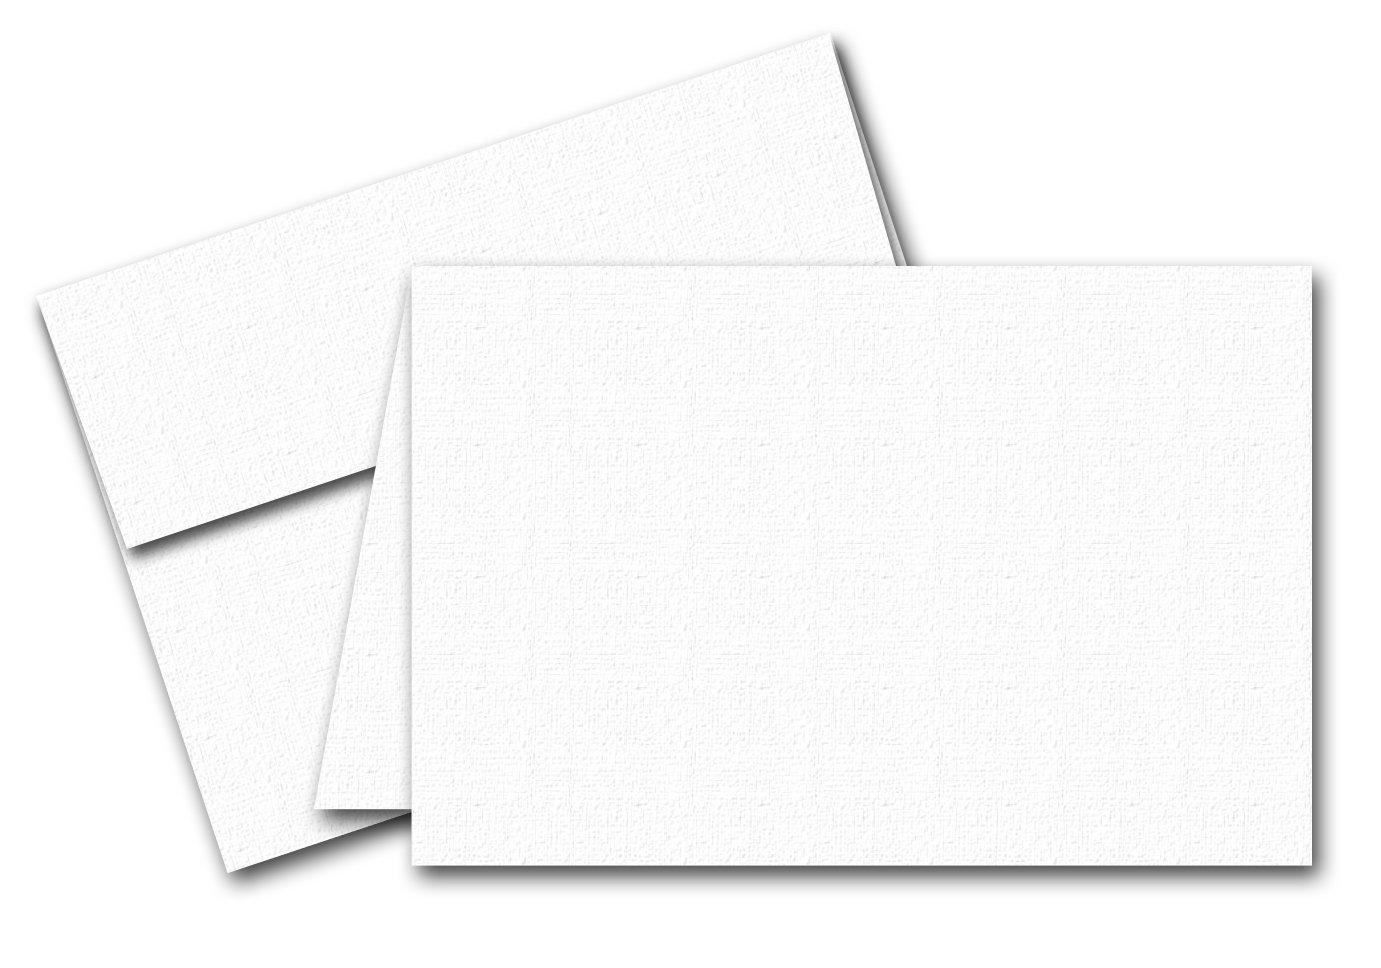 Cheap Folded Blank Cards Find Folded Blank Cards Deals On Line At